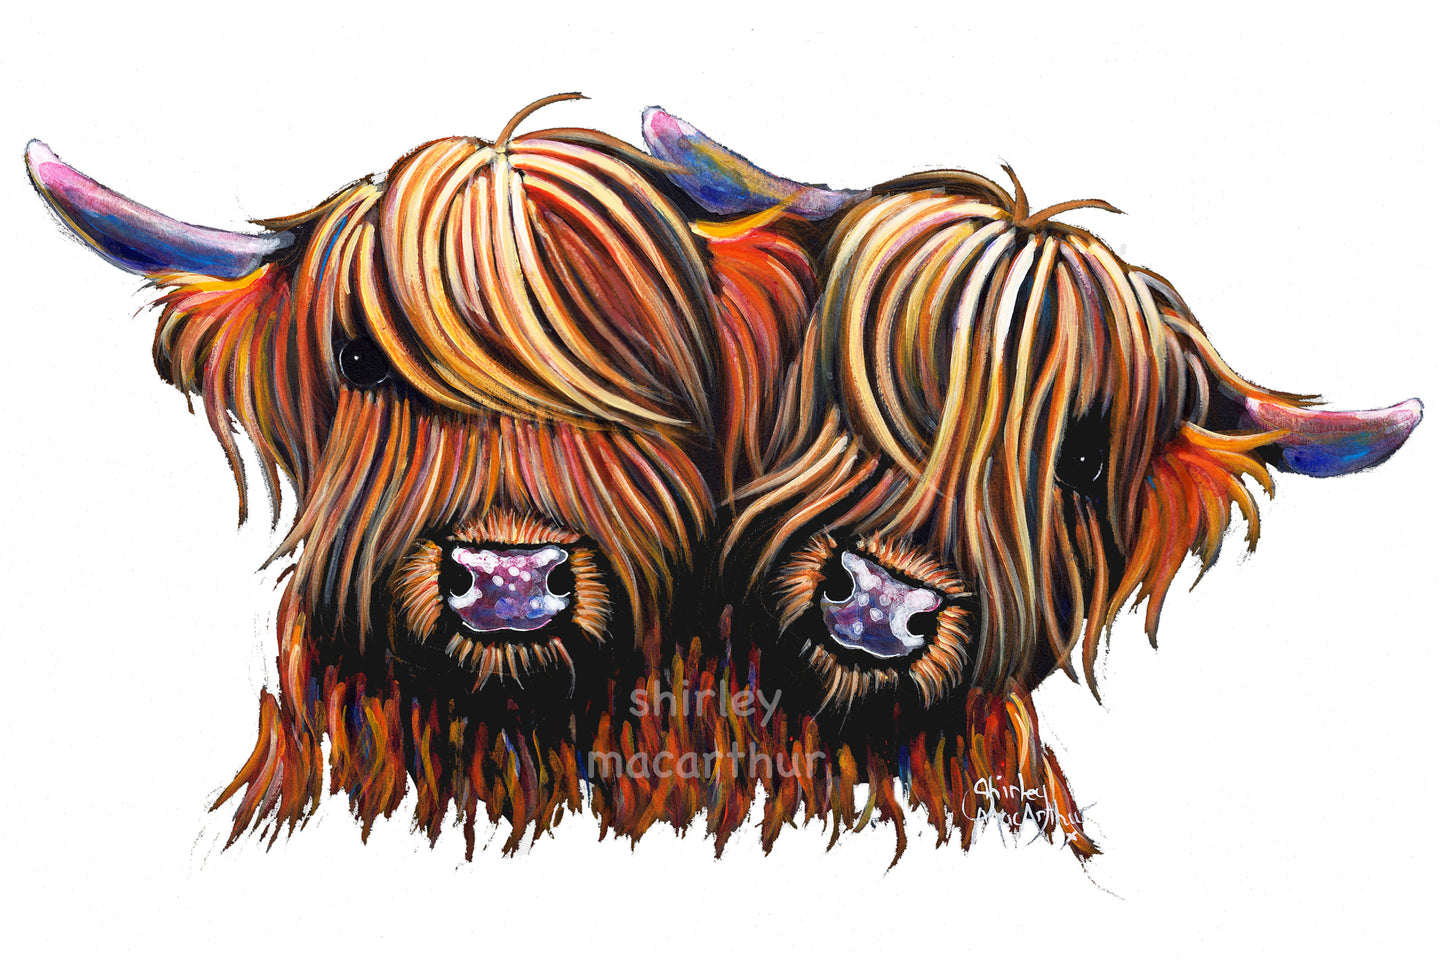 Highland Cow Prints 'Pals' by Shirley MacArthur